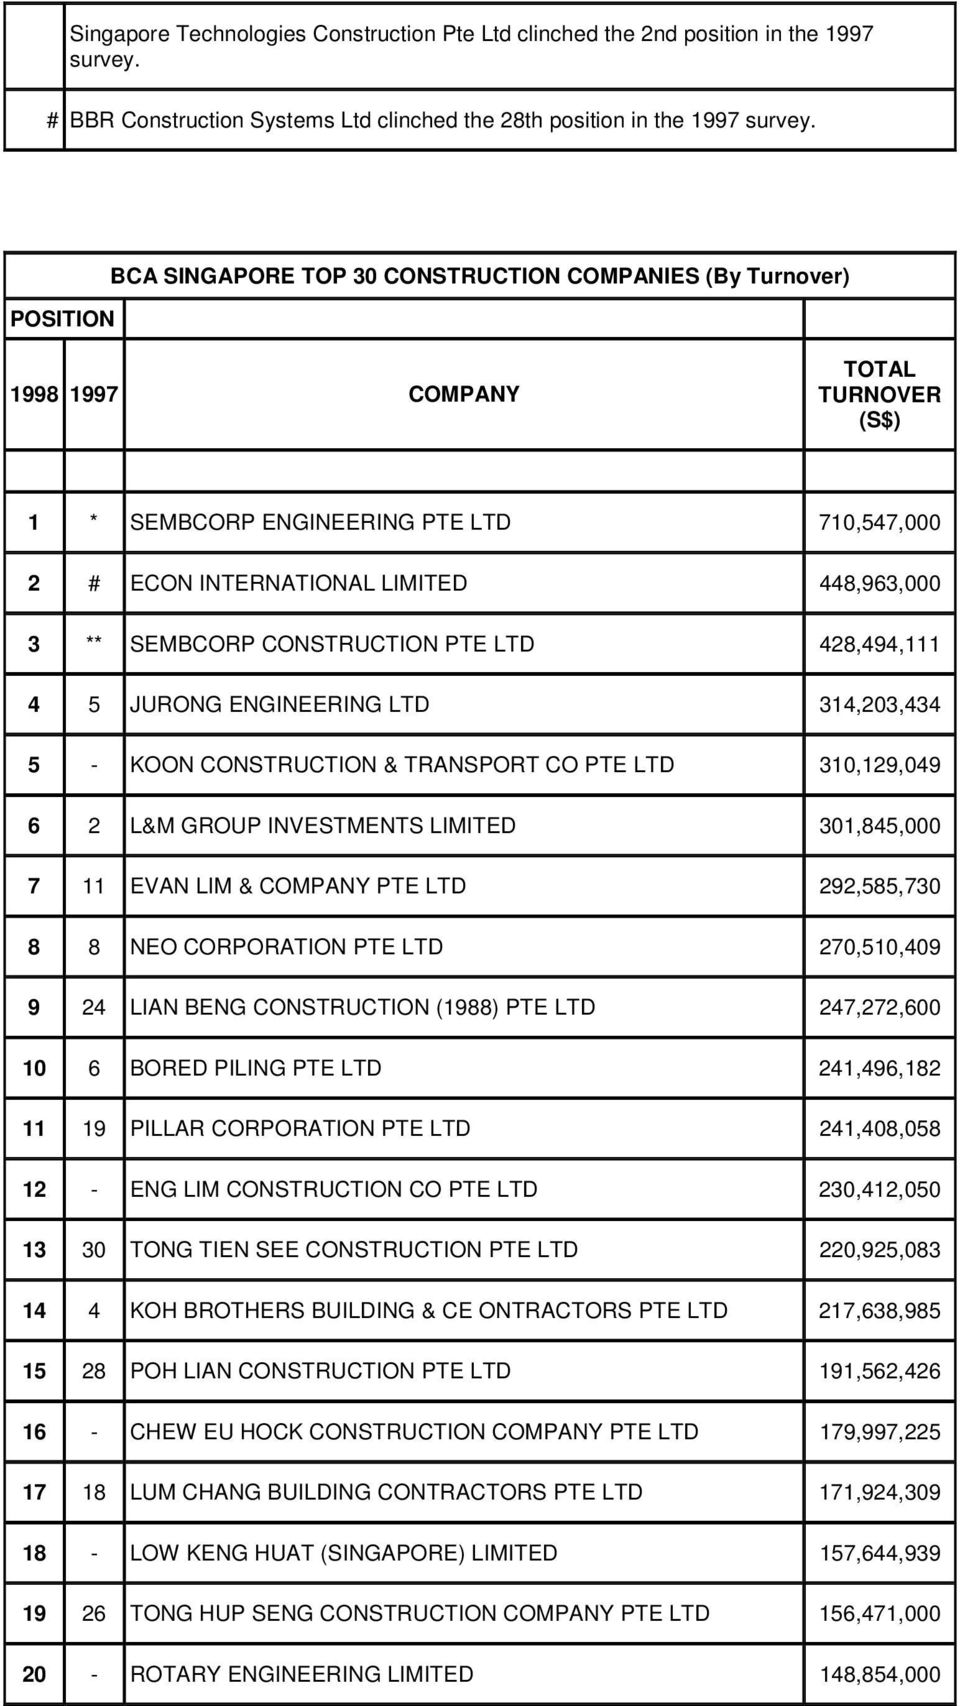 SEMBCORP CONSTRUCTION PTE 428,494,111 4 5 JURONG ENGINEERING 314,203,434 5 - KOON CONSTRUCTION & TRANSPORT CO PTE 310,129,049 6 2 L&M GROUP INVESTMENTS LIMITED 301,845,000 7 11 EVAN LIM & COMPANY PTE